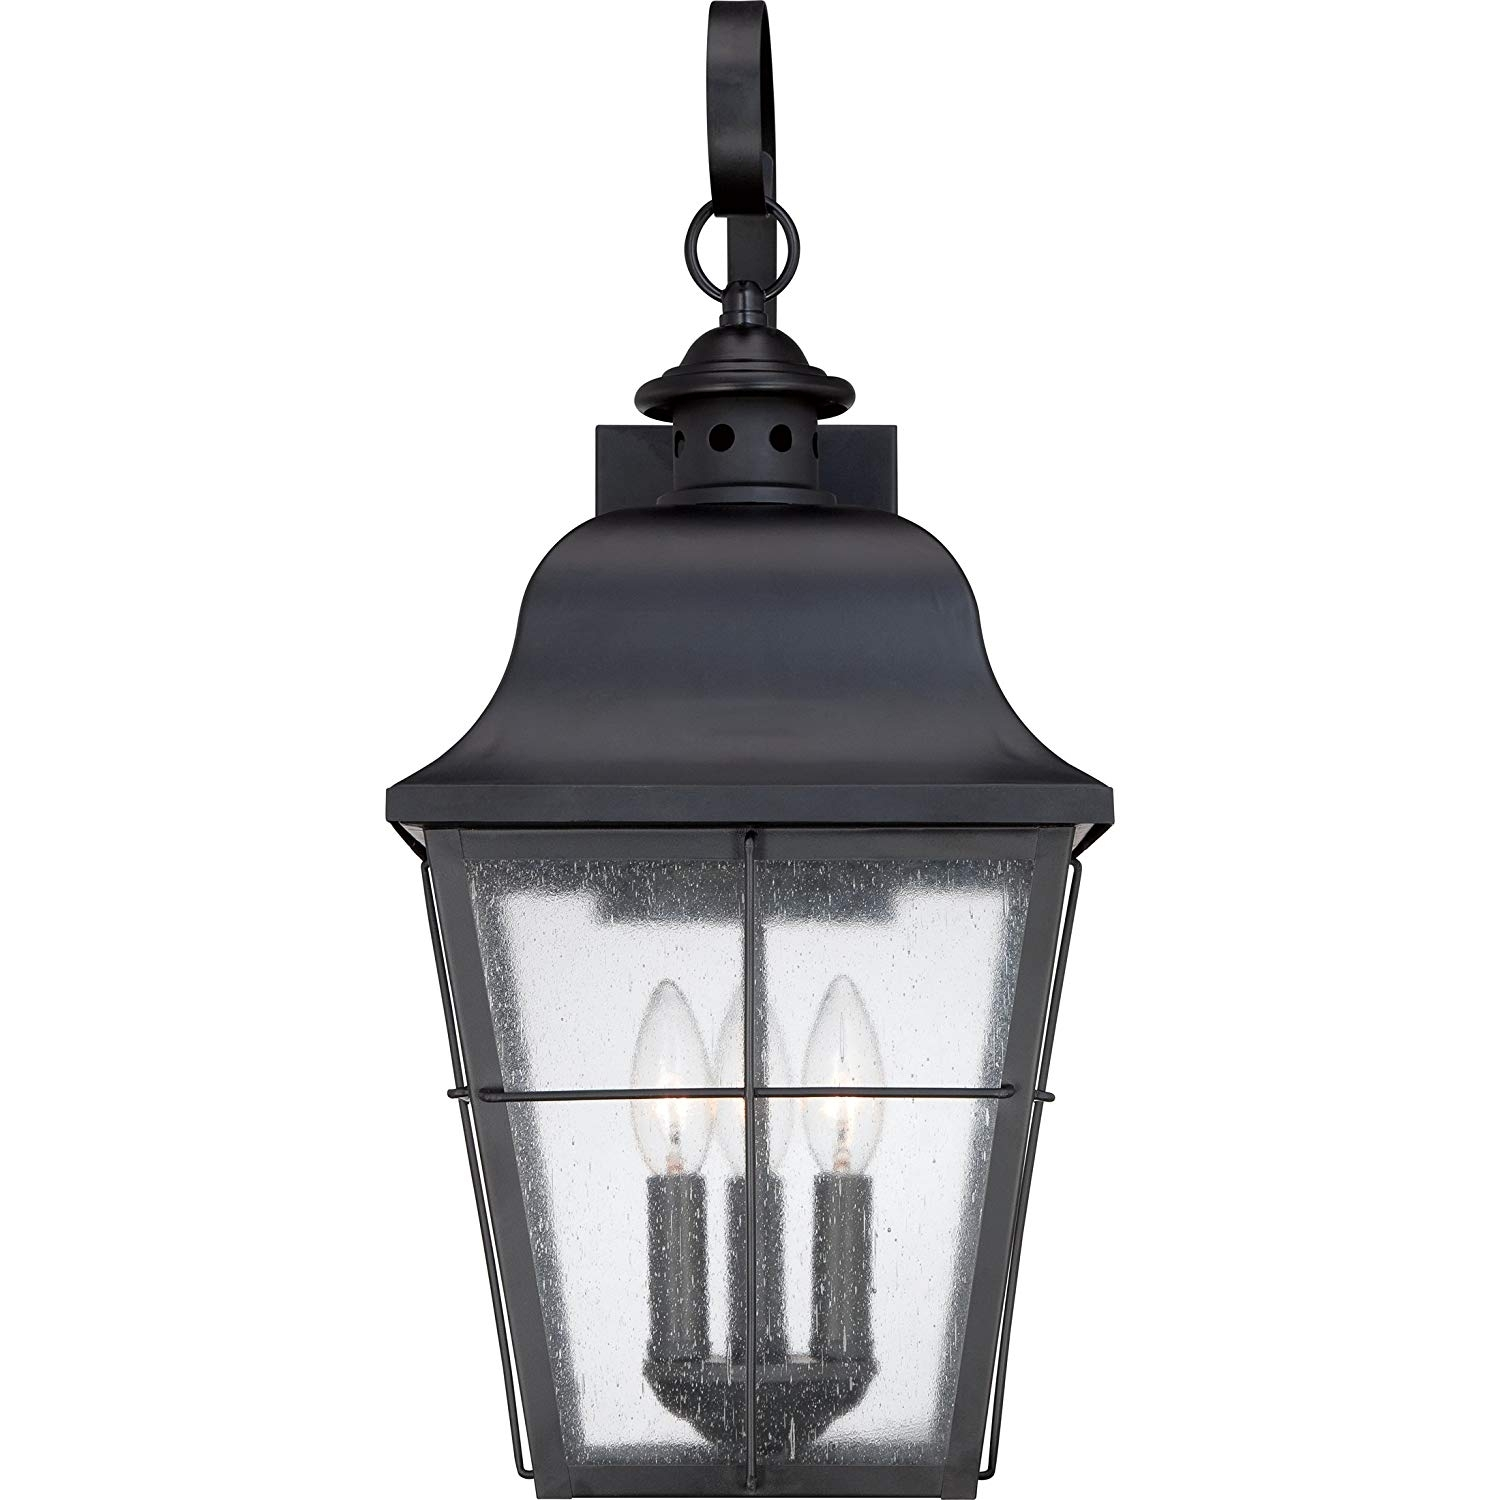 Quoizel Millhouse Outdoor Lantern - - Amazon within Jumbo Outdoor Lanterns (Image 16 of 20)